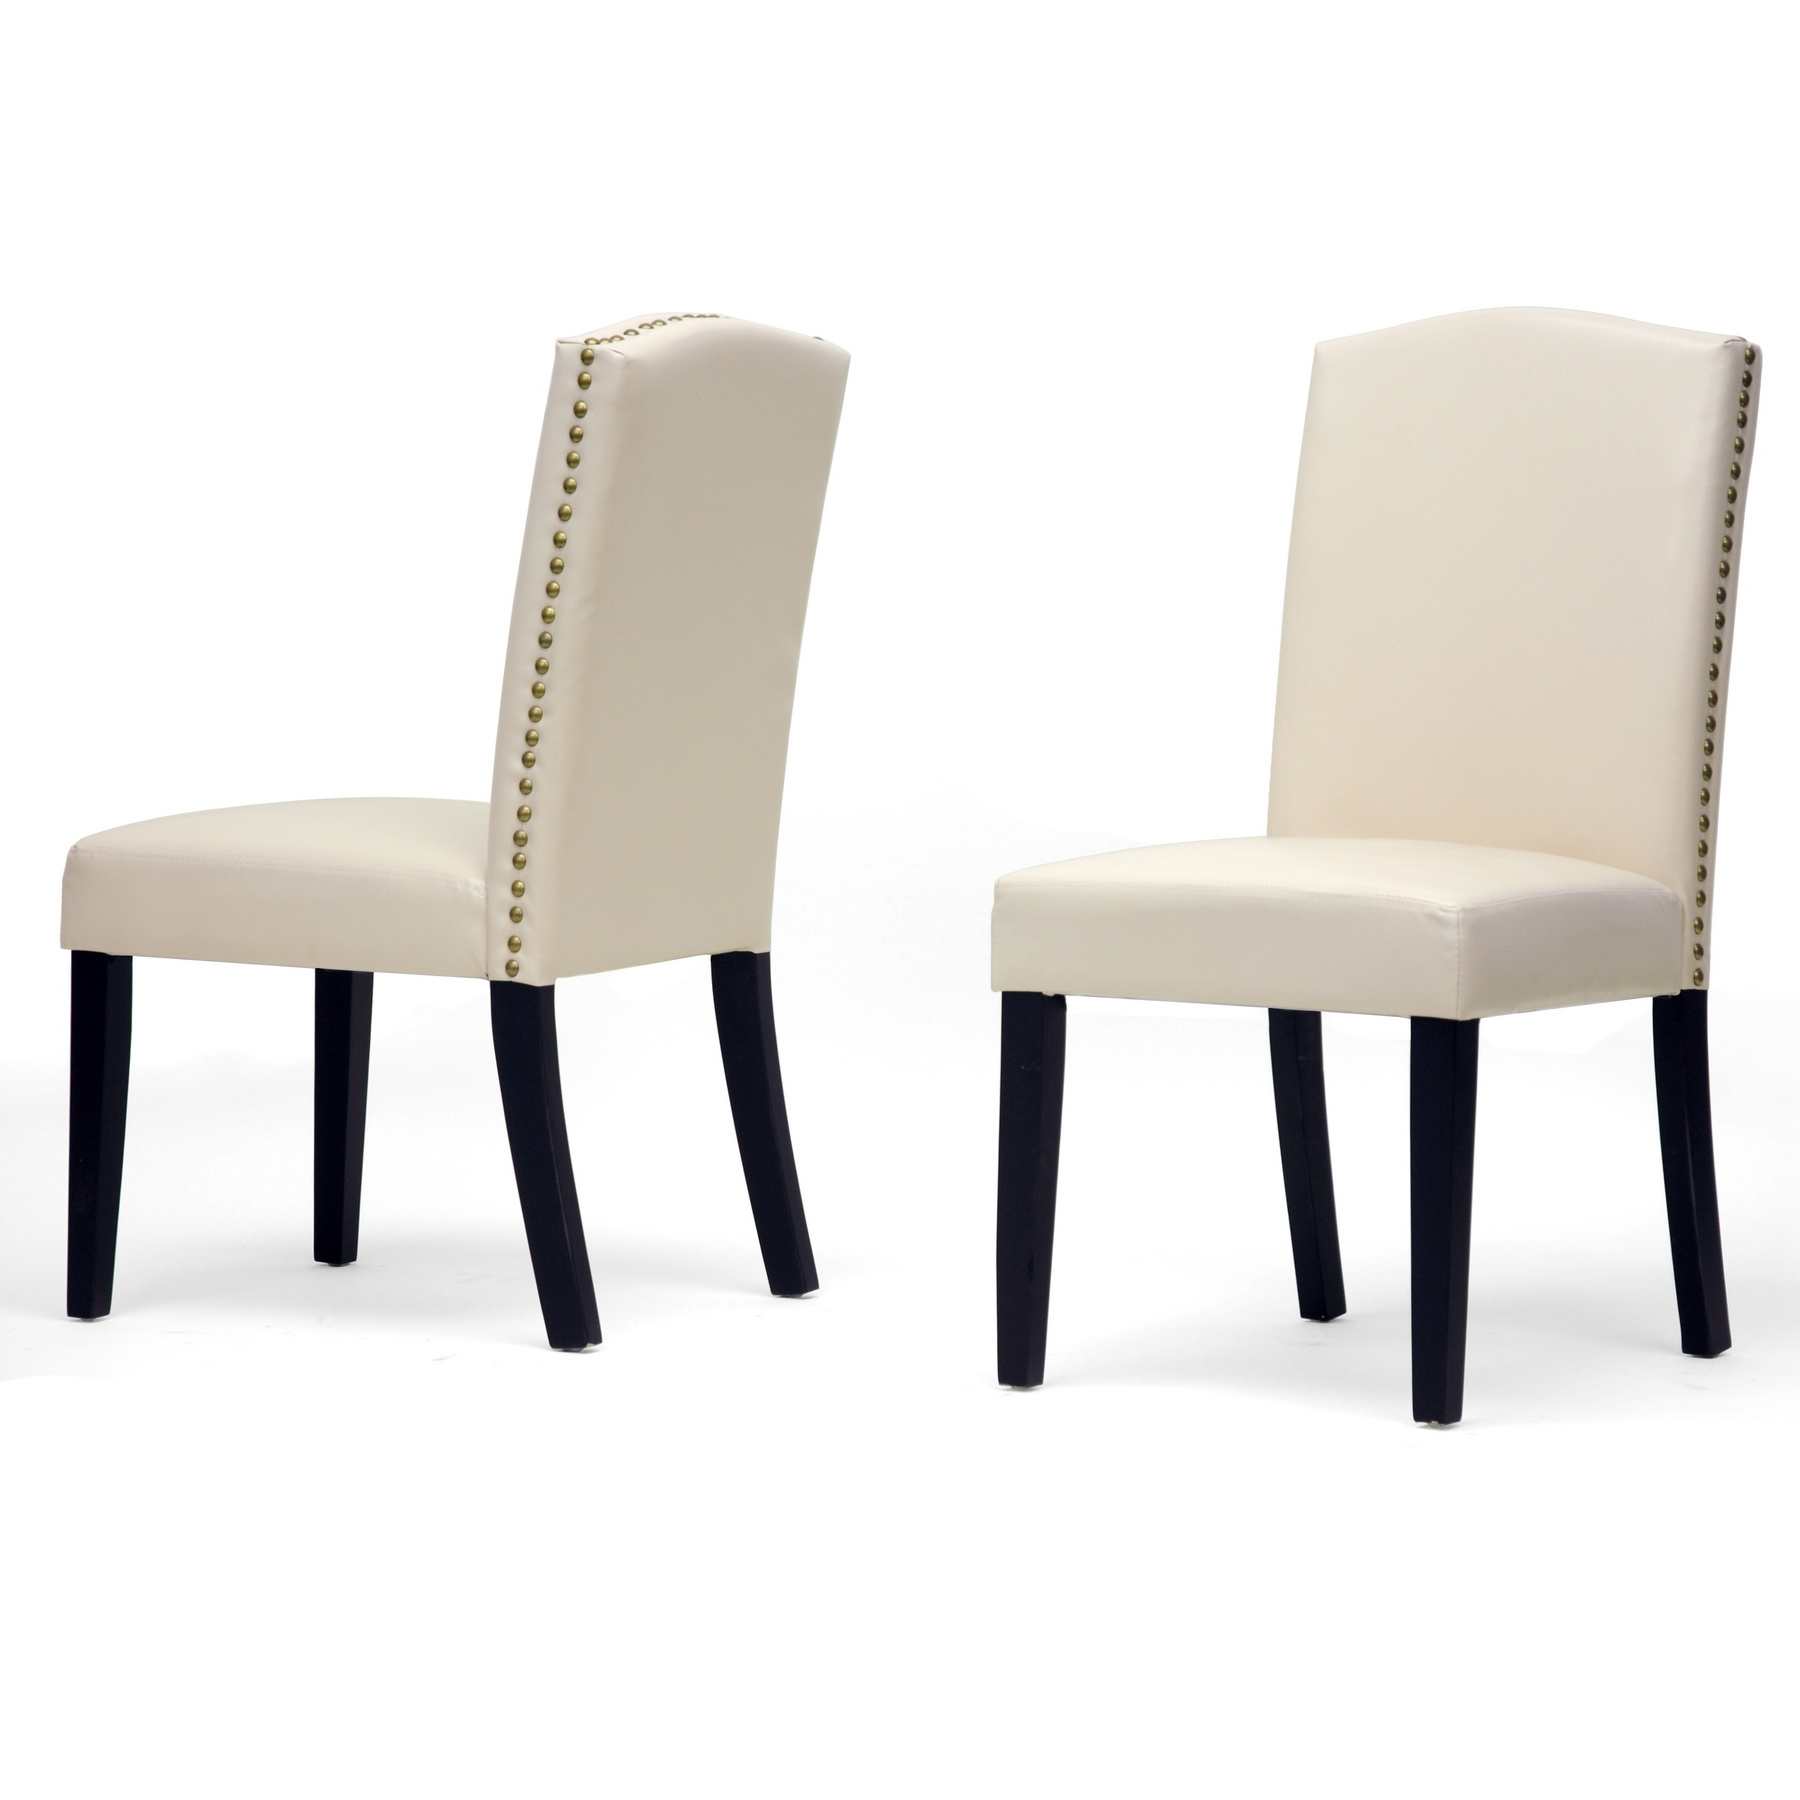 2018 White Leather Chairs With High Back Plus Black Wooden Legs French with High Back Leather Dining Chairs